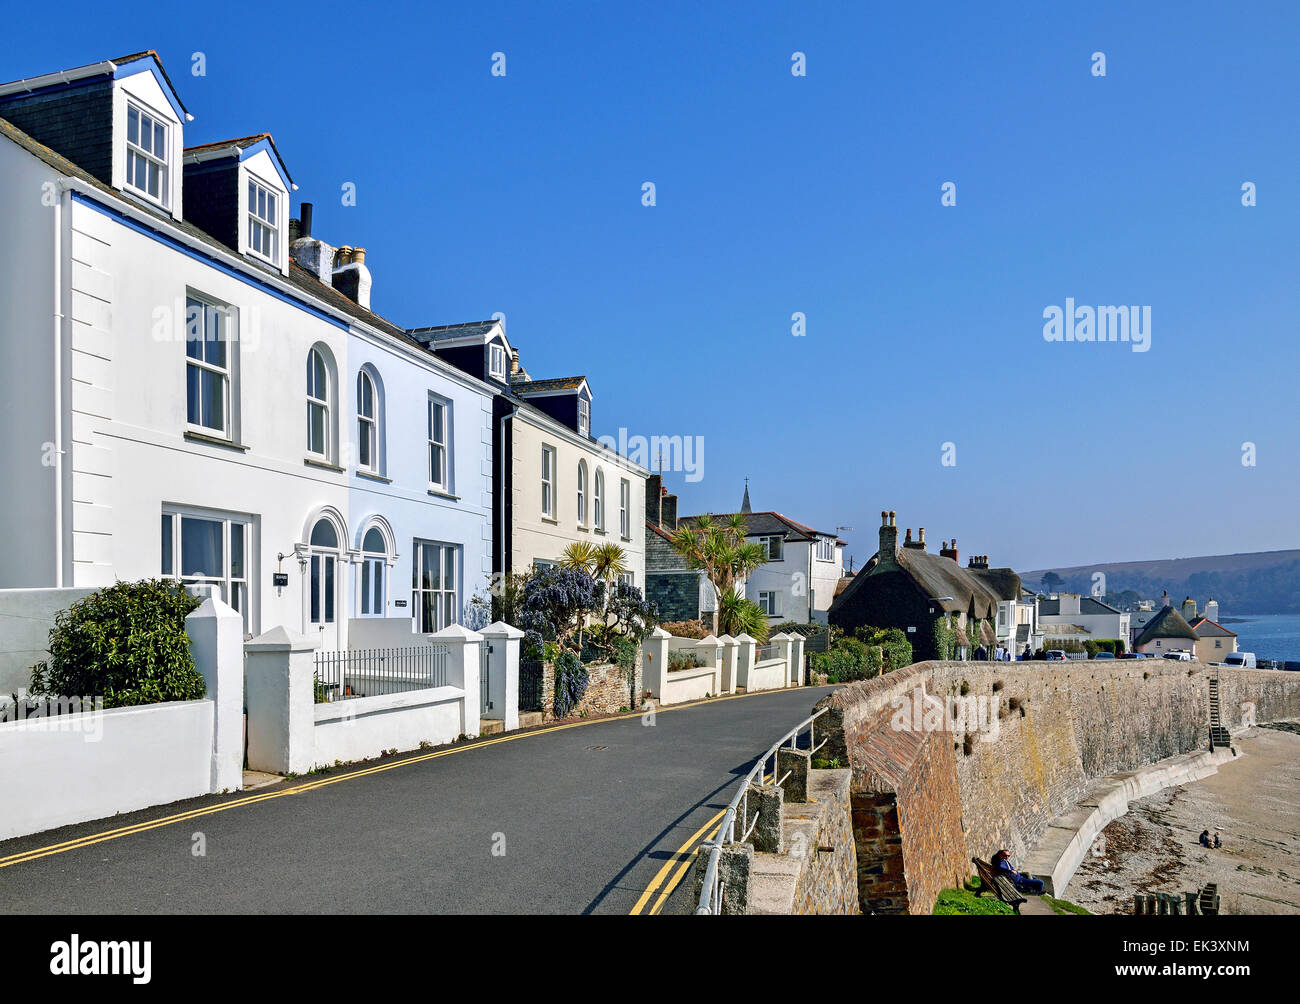 Seafront properties at St.Mawes in Cornwall, UK - Stock Image